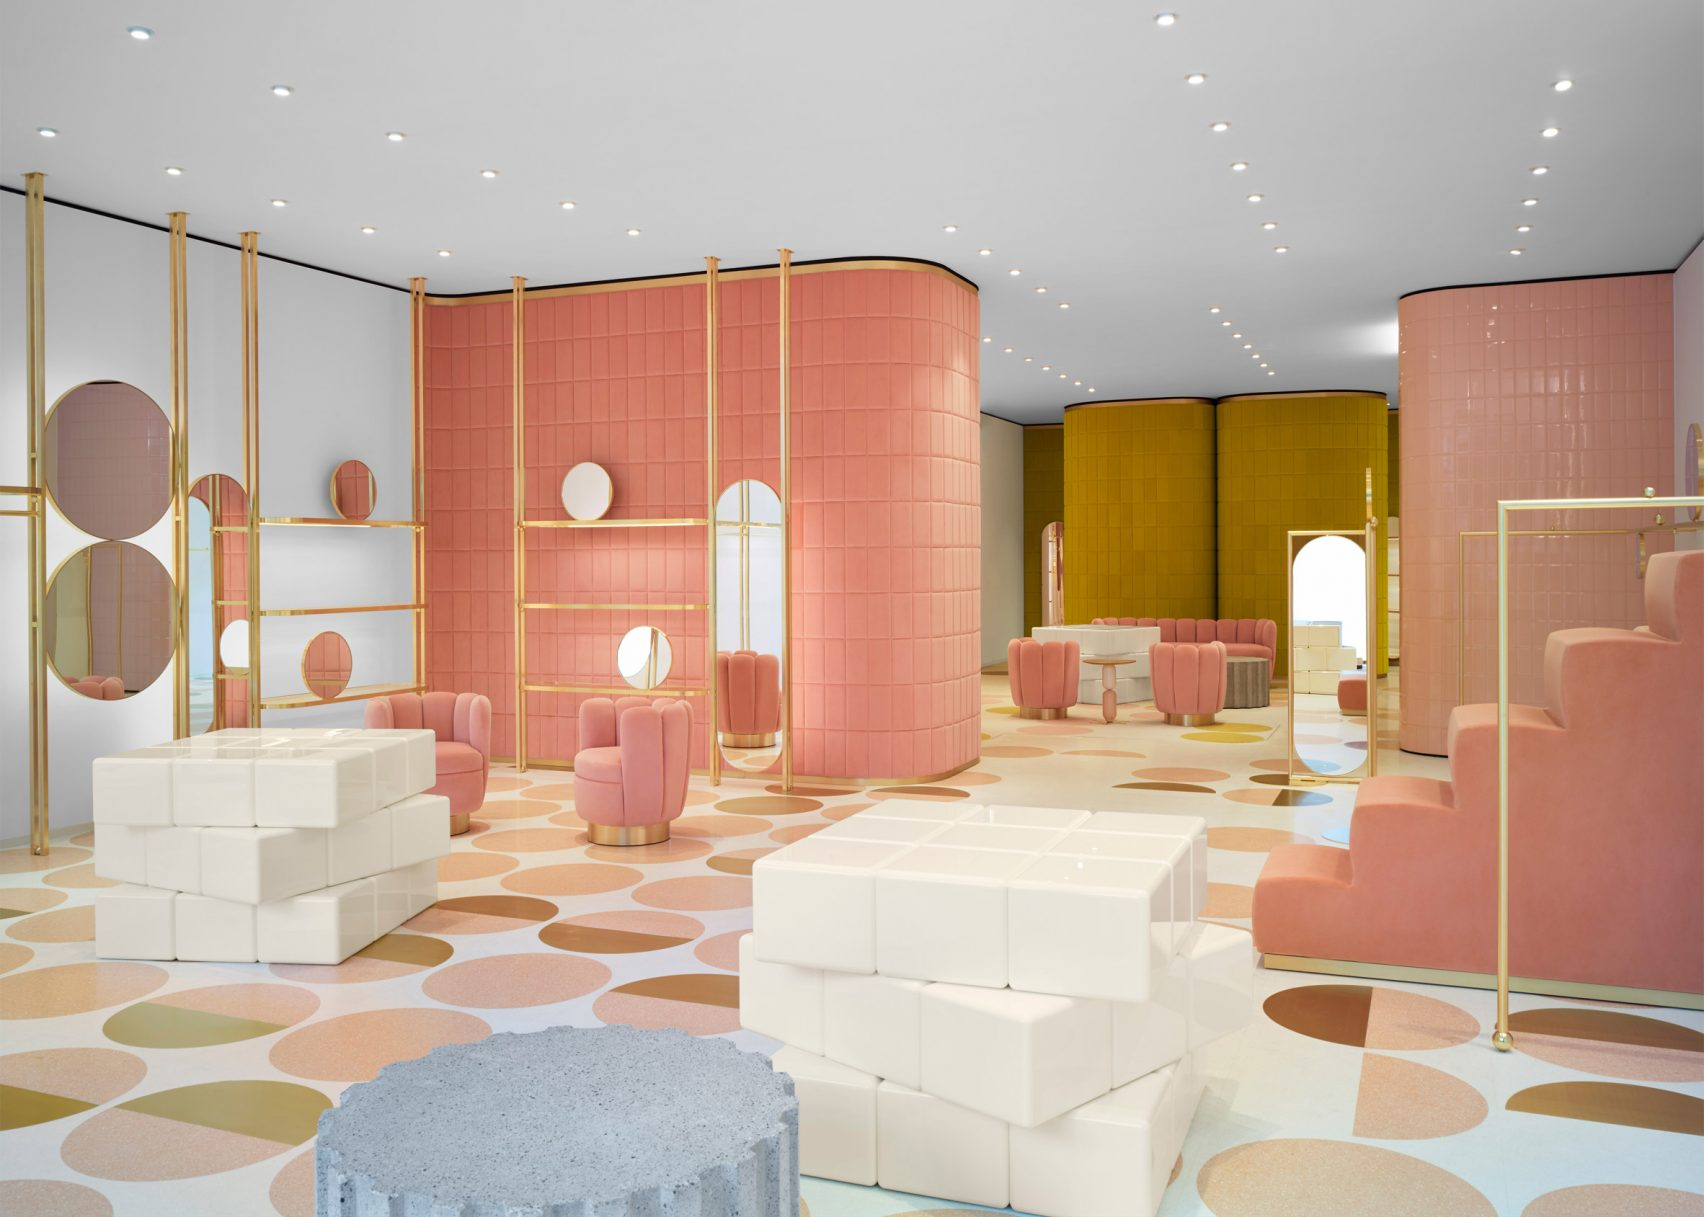 Contemporary Design Best Interior Designers in the World - India Mahdavi - contemporary design Contemporary Design: Best Designers and Architects in the World Contemporary Design Best Interior Designers in the World India Mahdavi